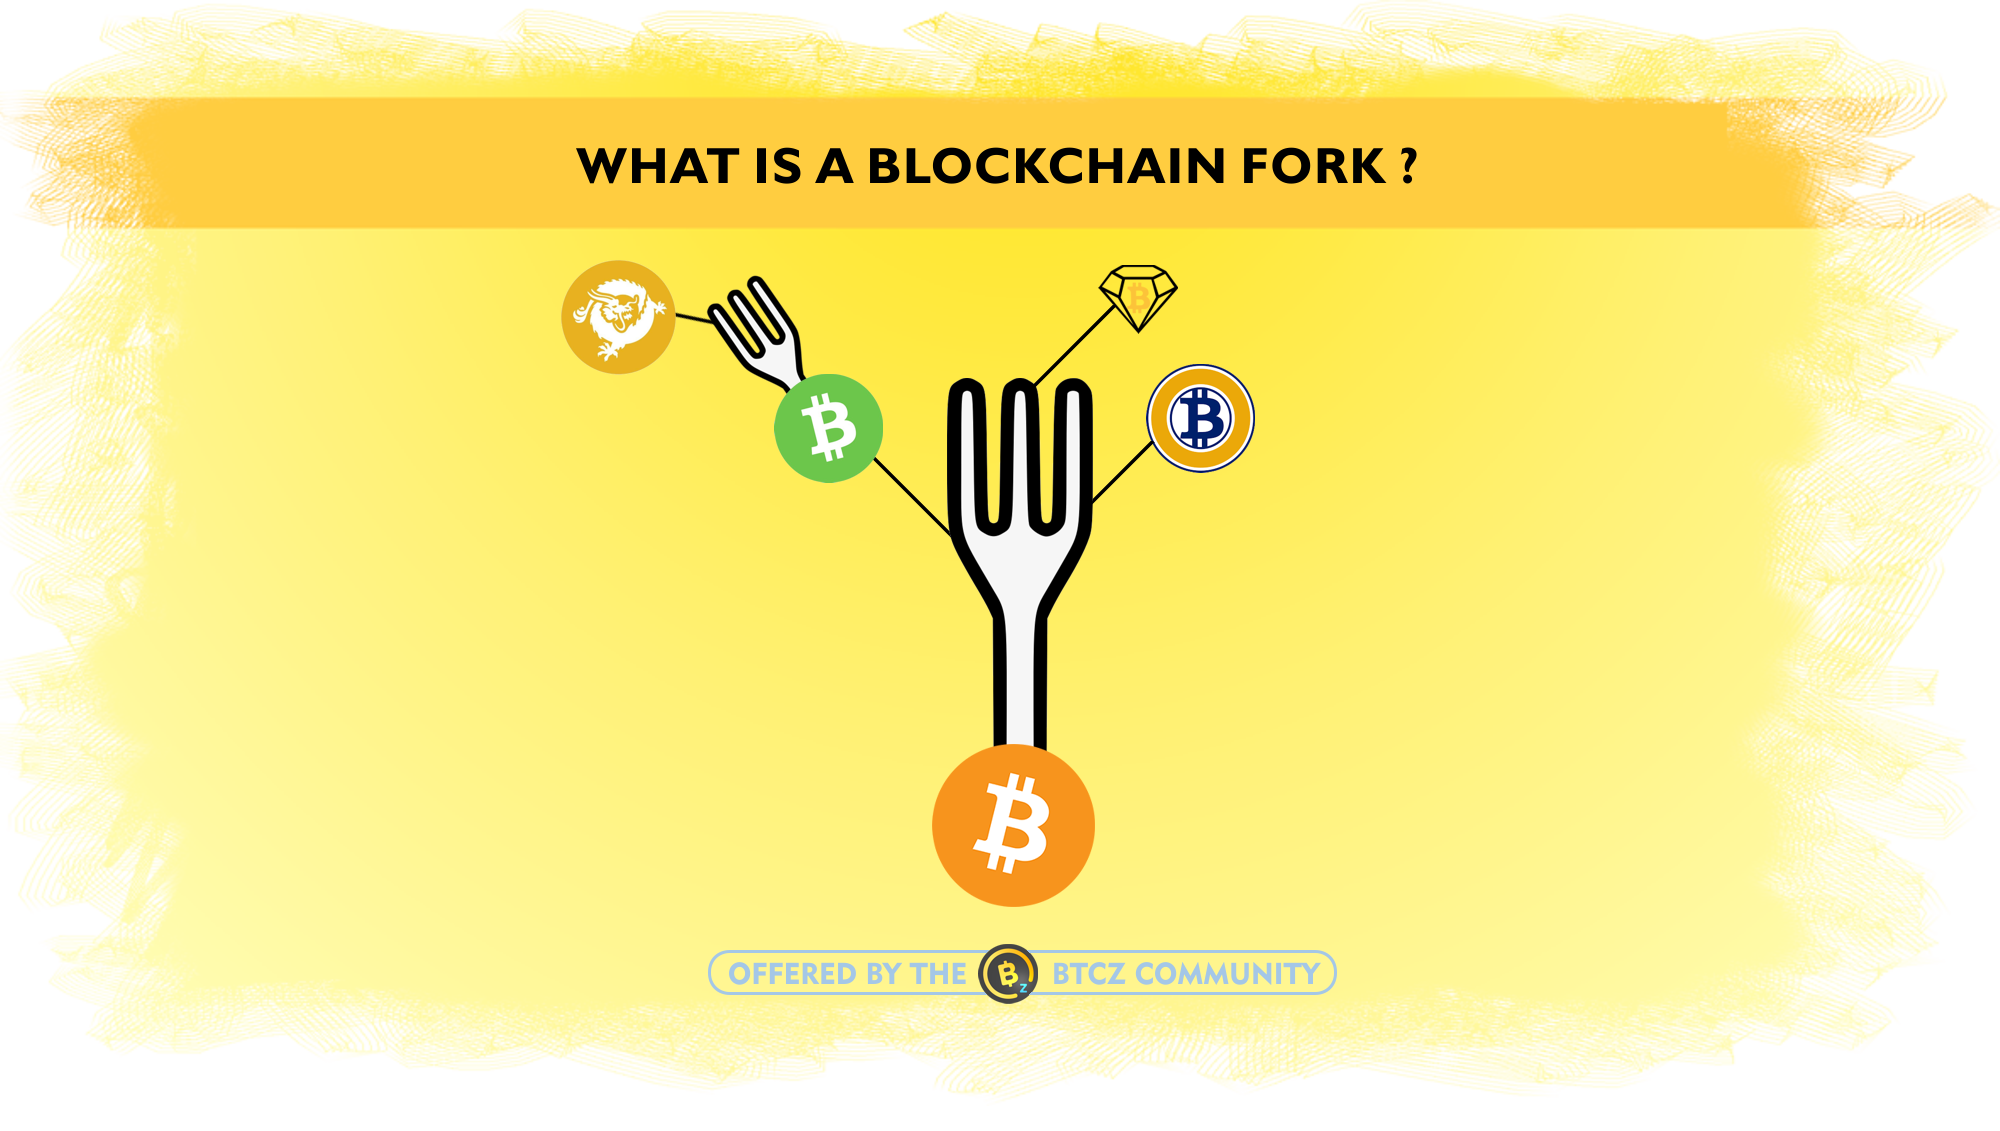 What is a fork?